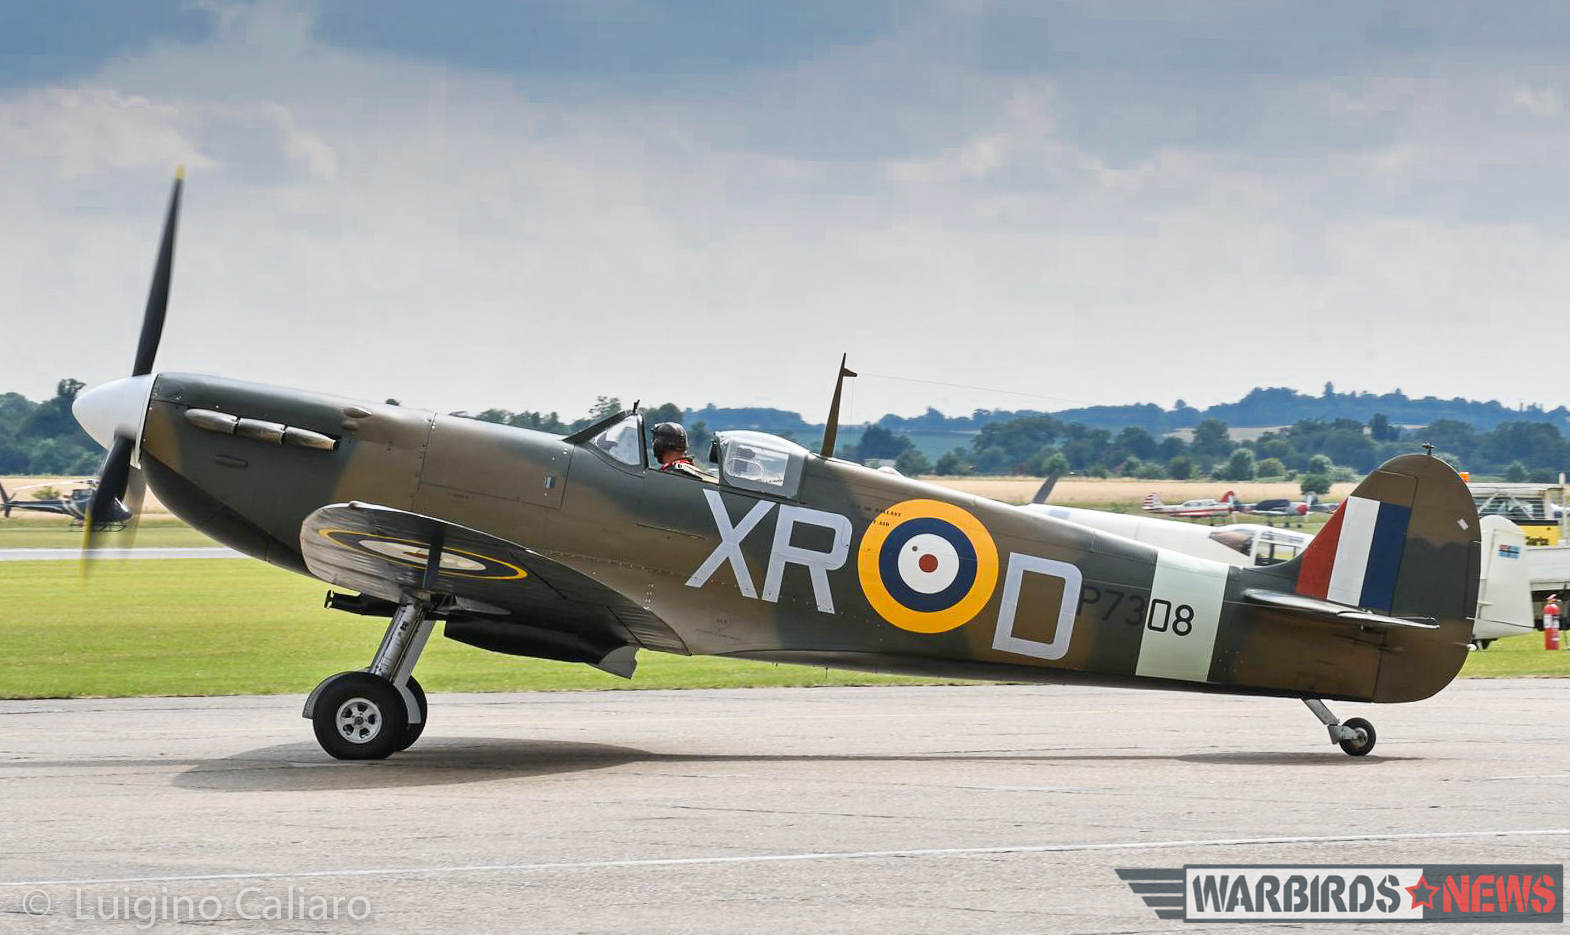 Spitfire Mk.Ia AR213, marked as Spitfire Mk.IIa P7308 from 71 (Eagle) Squadron, taxis out for takeoff. (photo by Luigino Caliaro)